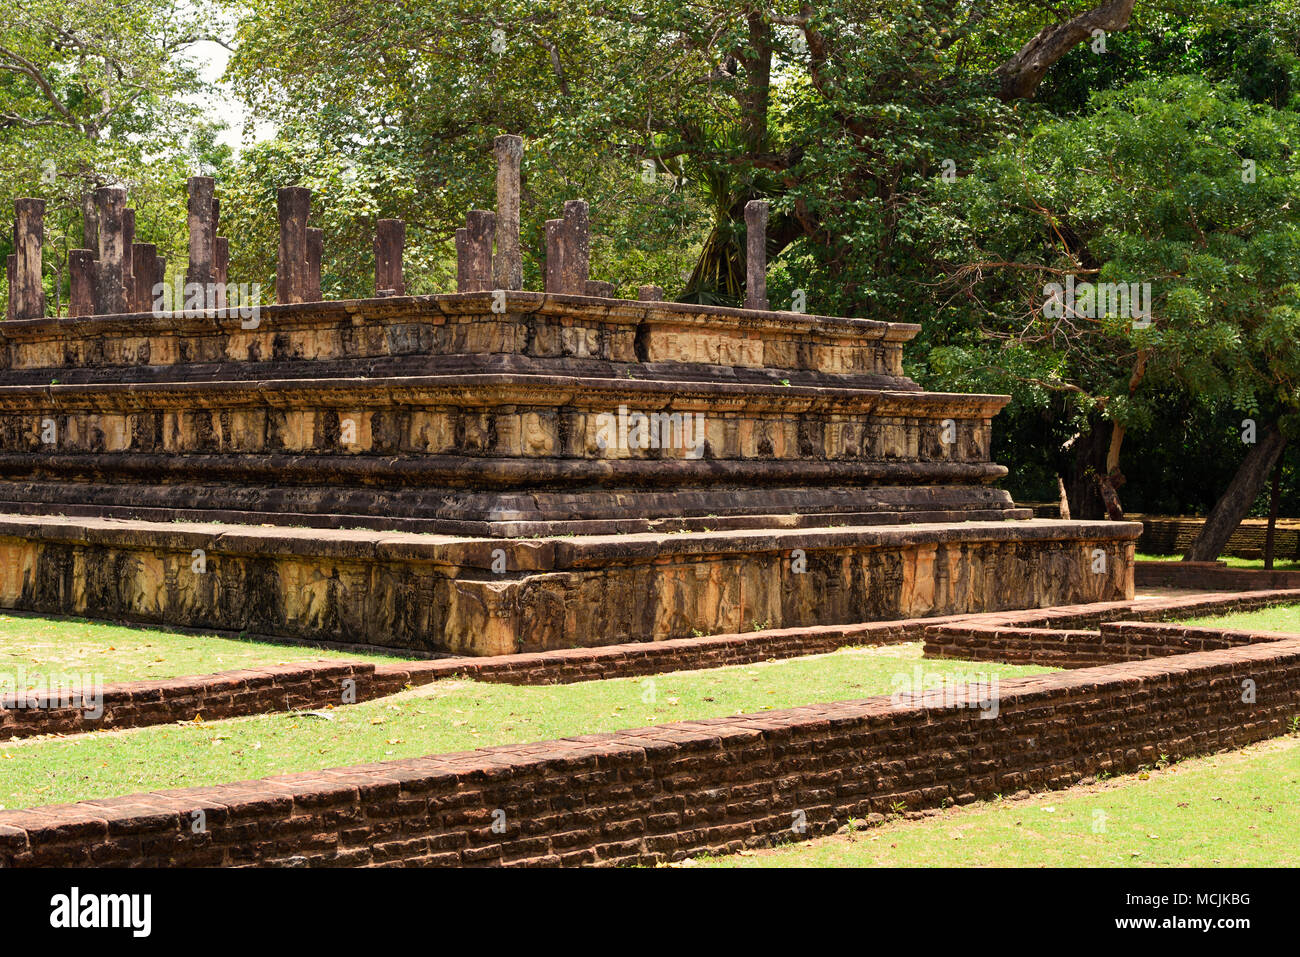 Ruins of the Royal Palace, Audience Hall, Polonnaruwa, North Central Province, Sri Lanka - Stock Image